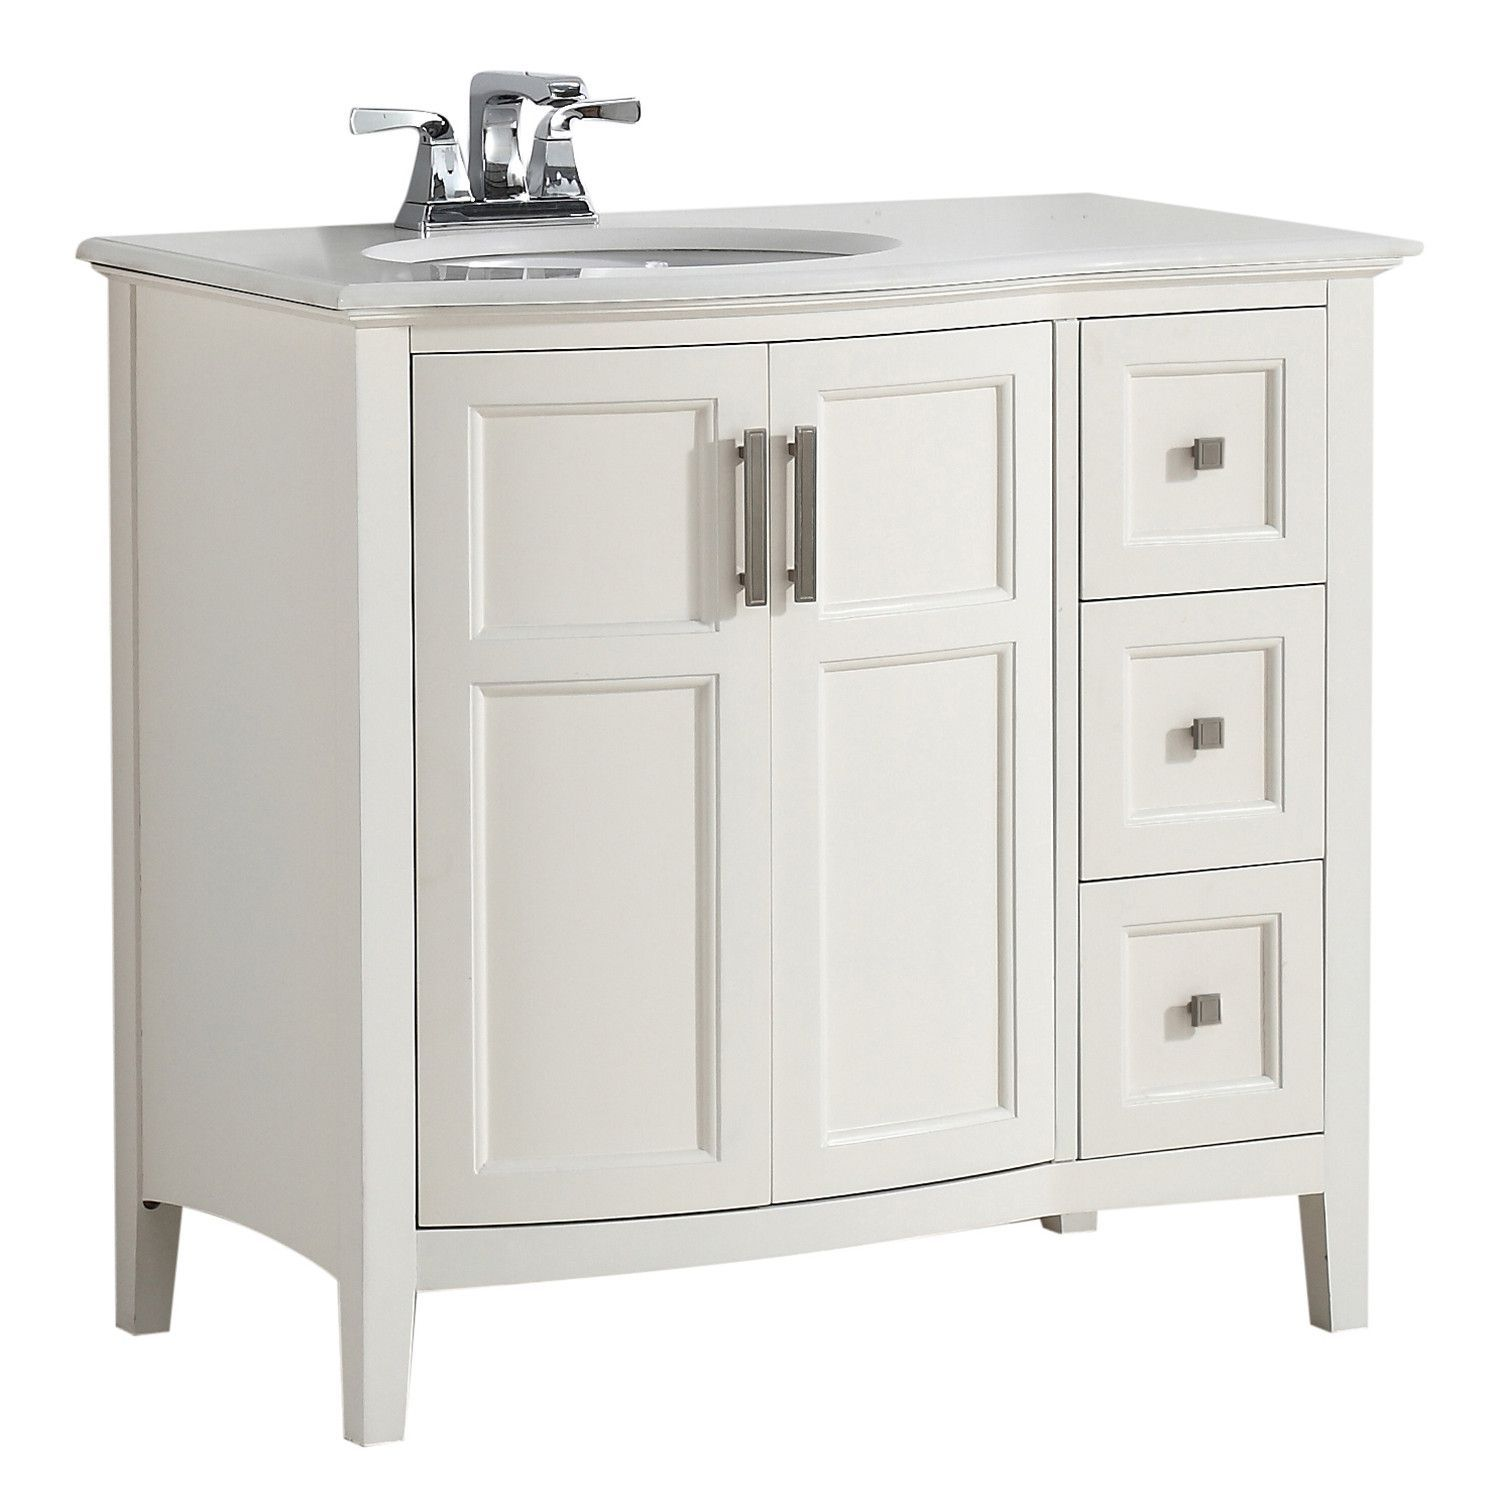 Winston 36 Inch Rounded Front Bath Vanity With Bombay White Engineered Quartz Marble Top Marble Vanity Tops Single Sink Bathroom Vanity Bath Vanities